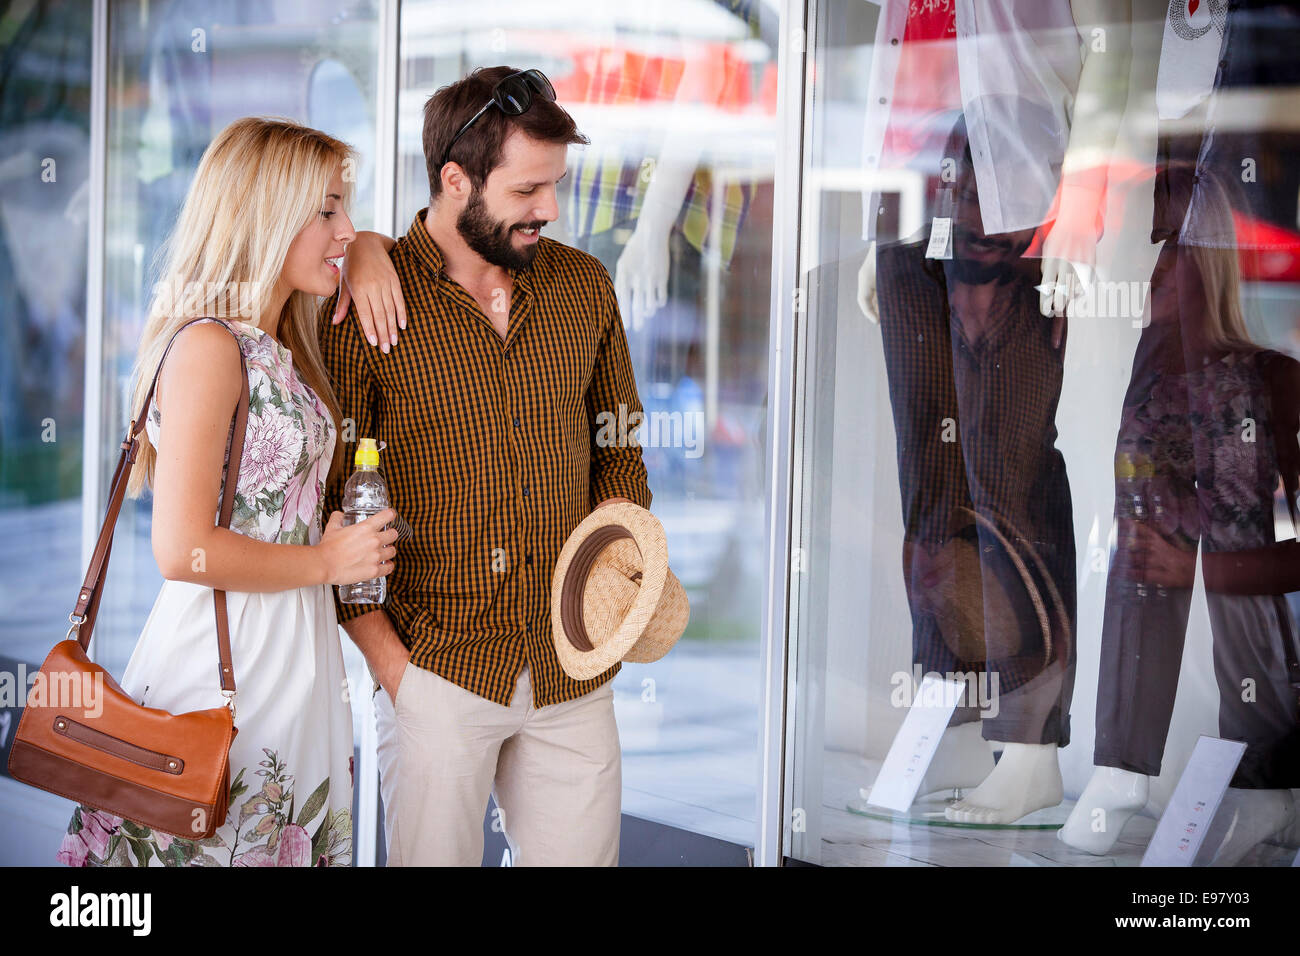 Young couple looking at fashion shop window - Stock Image